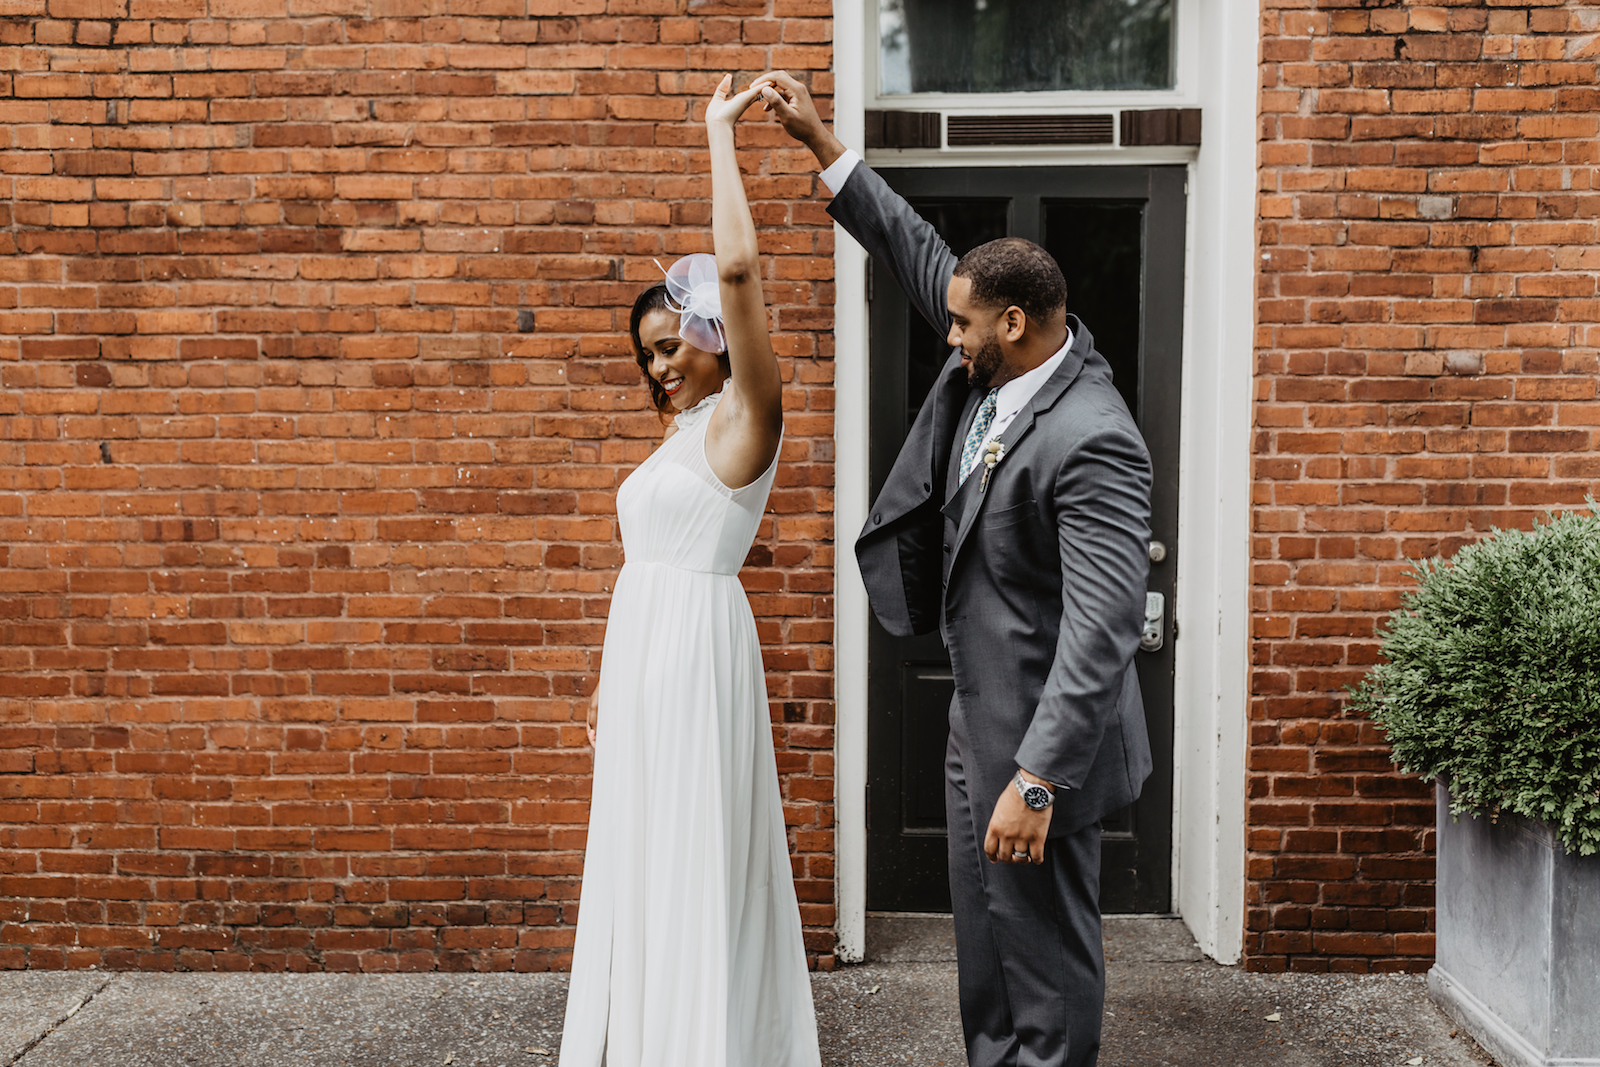 Music City Merger wedding inspiration featured on Nashville Bride Guide